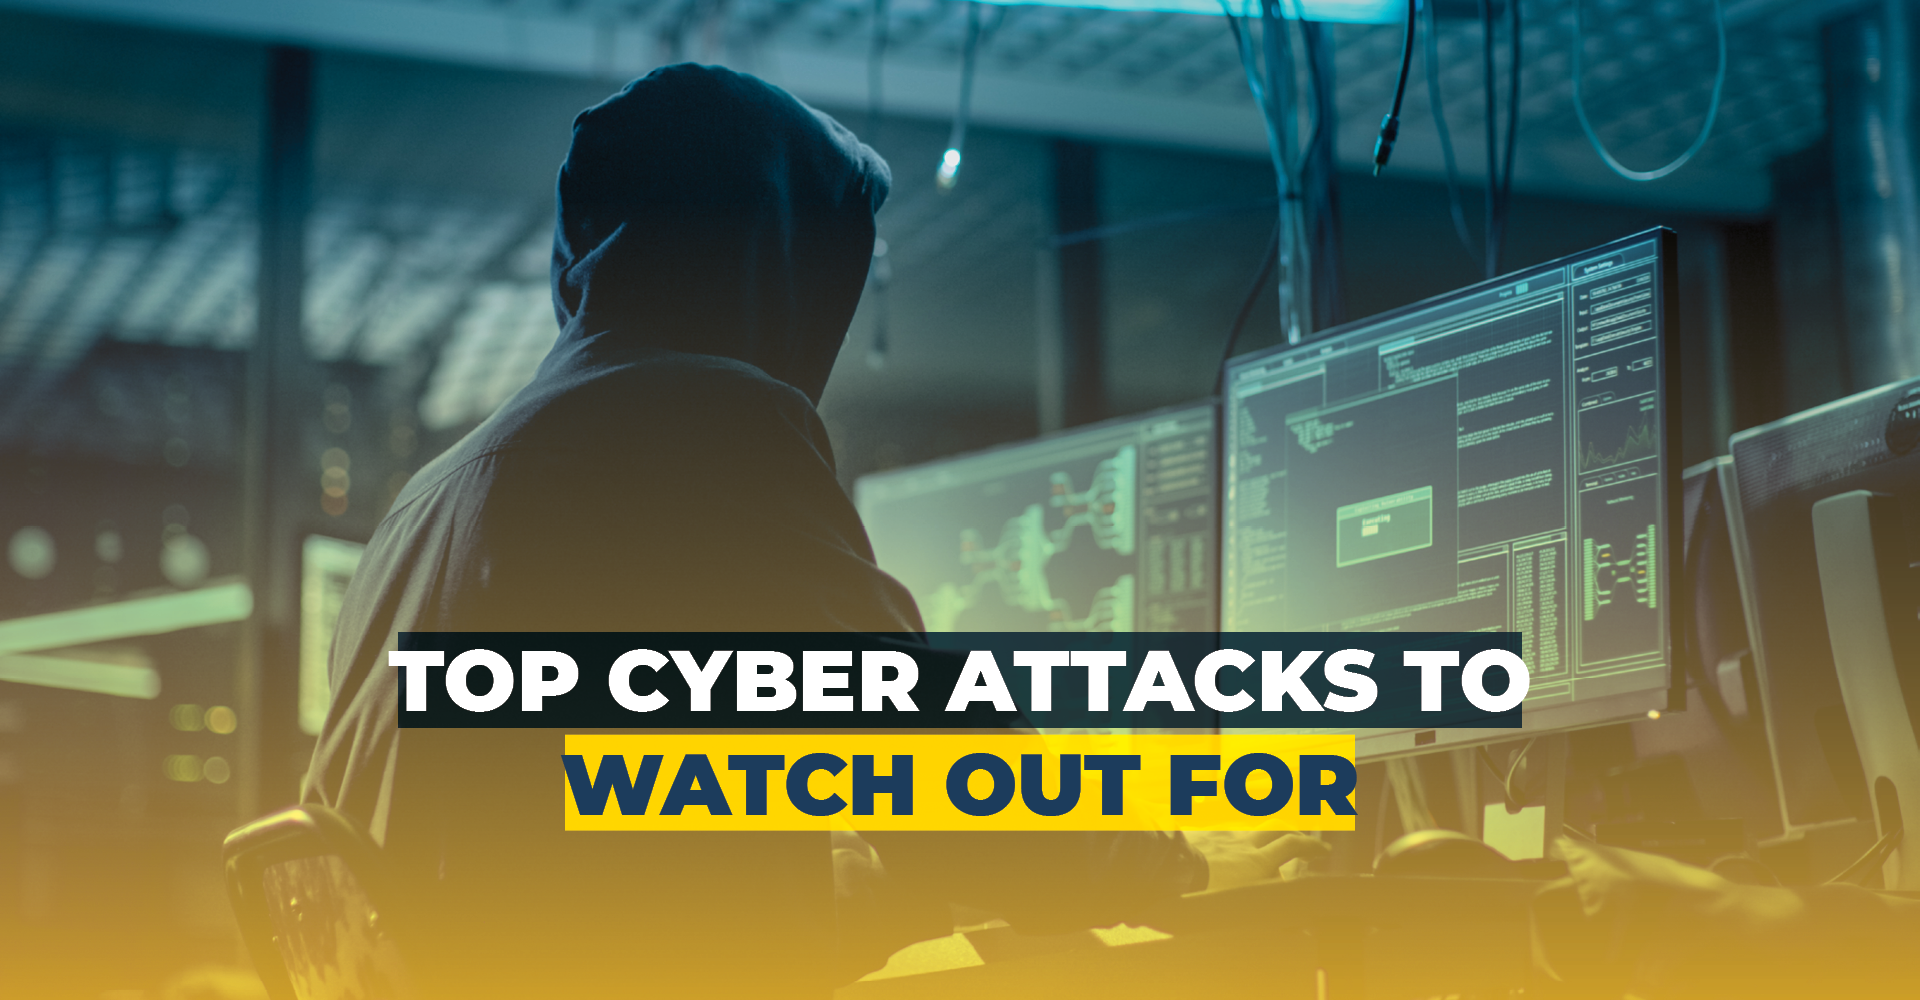 The Top Cyber Attacks To Watch Out For